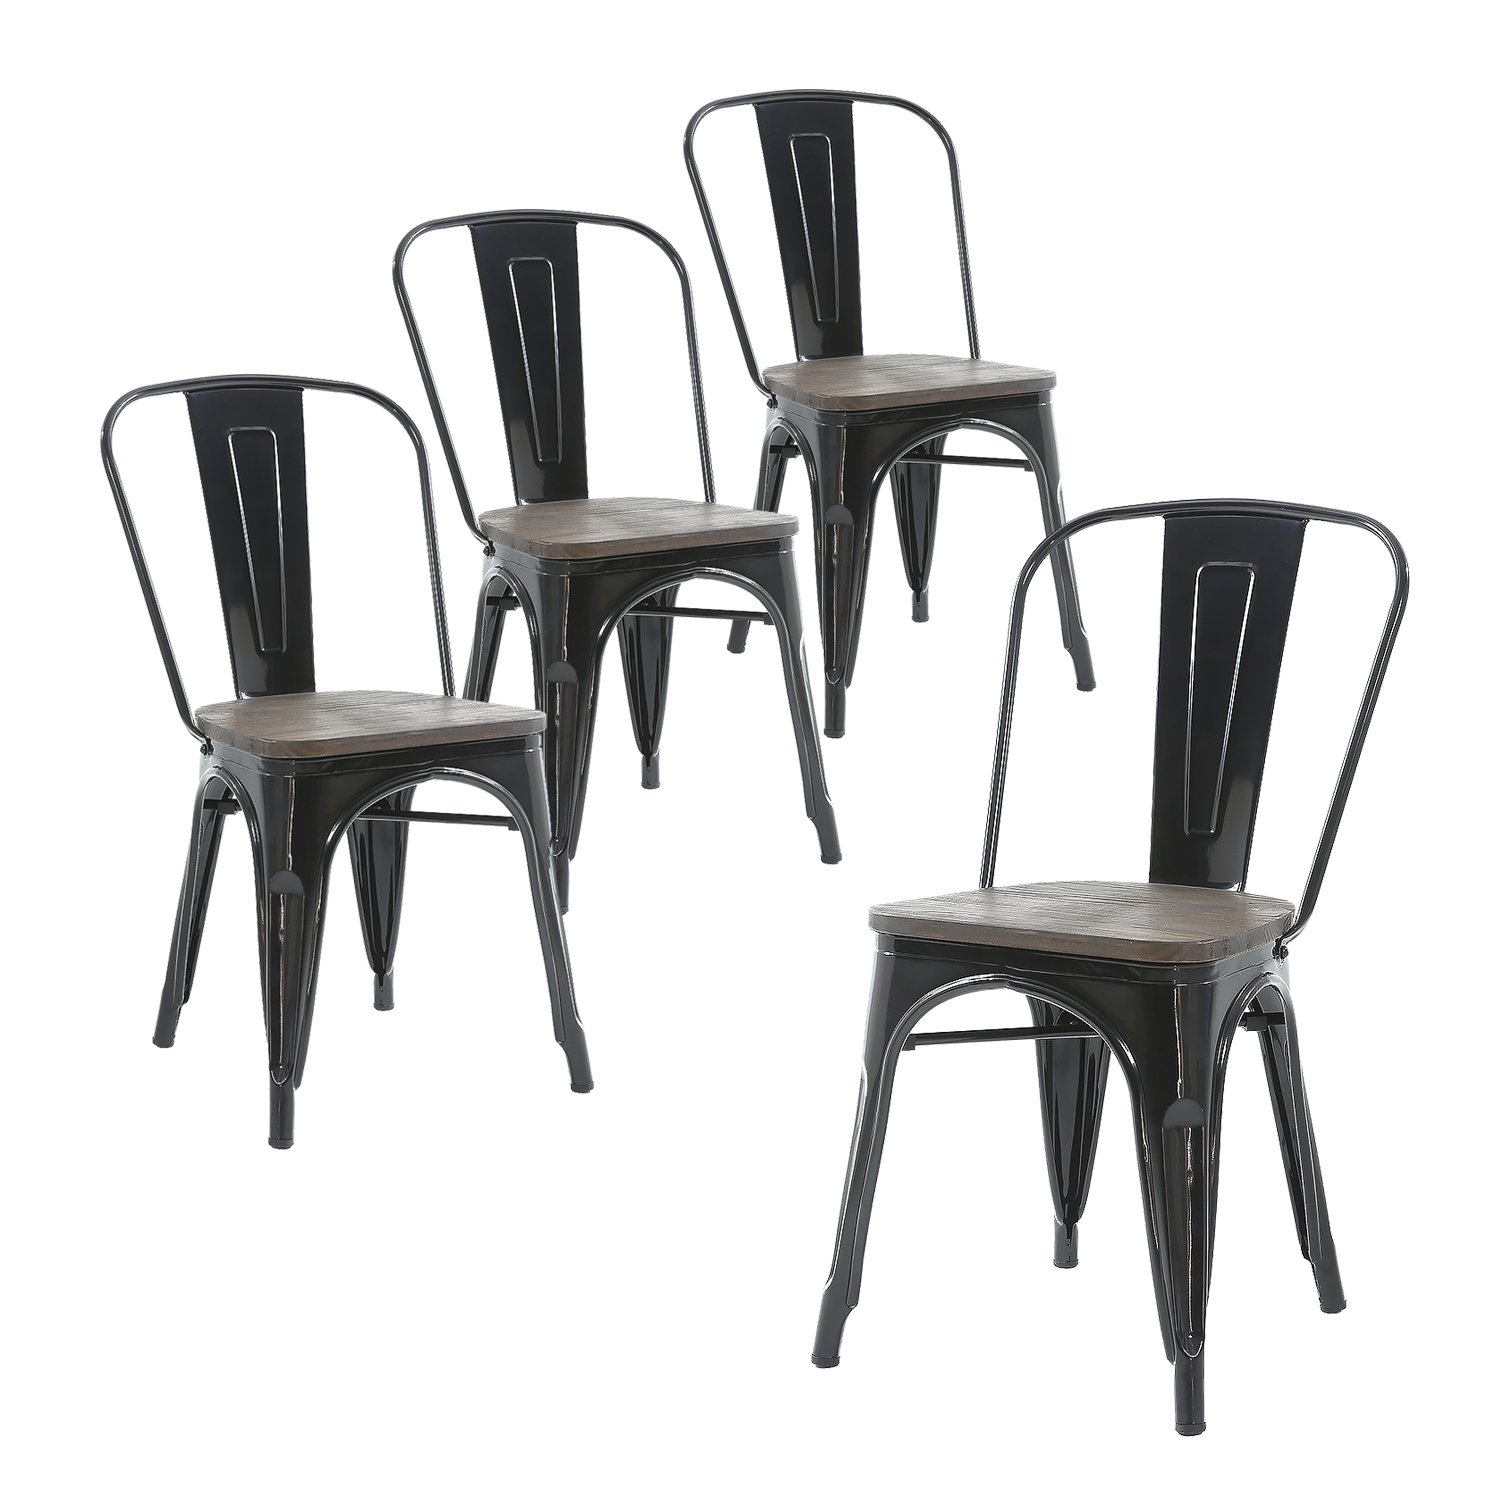 Buschman Set of Four Black Wooden Seat Metal Indoor/Outdoor Stackable Chairs with Back